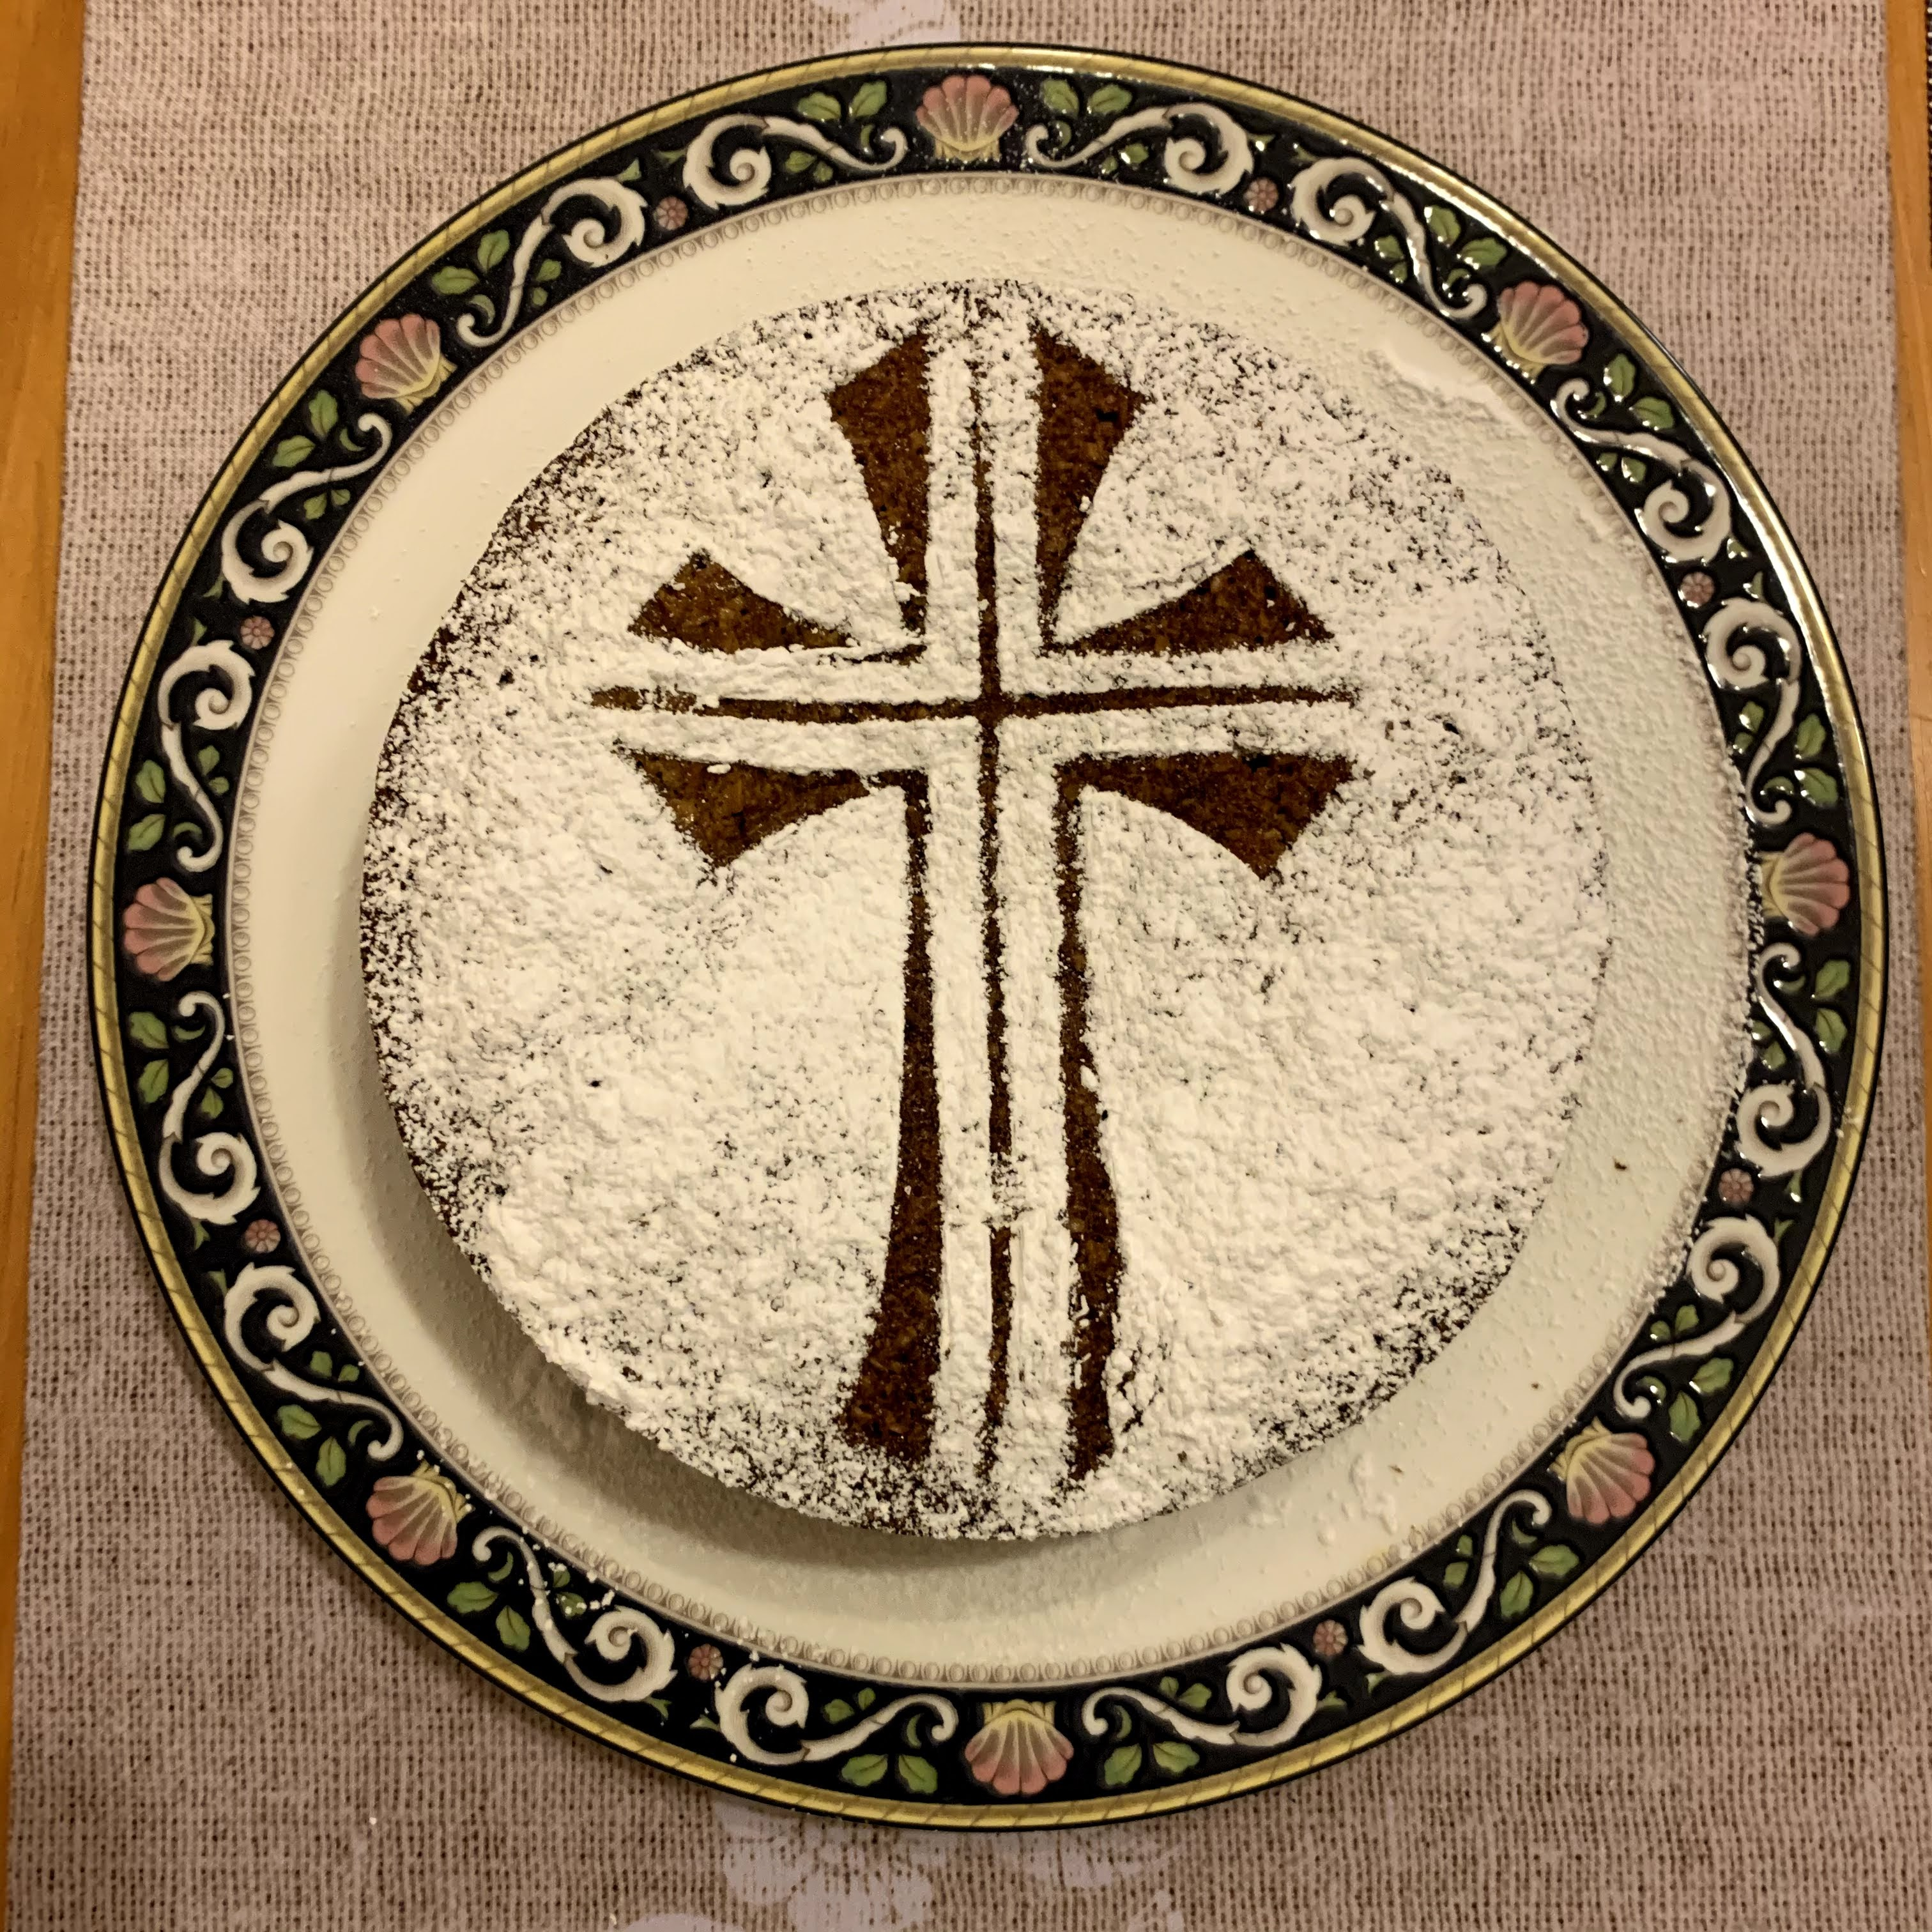 carrot cake with icing sugar in the shape of a cross